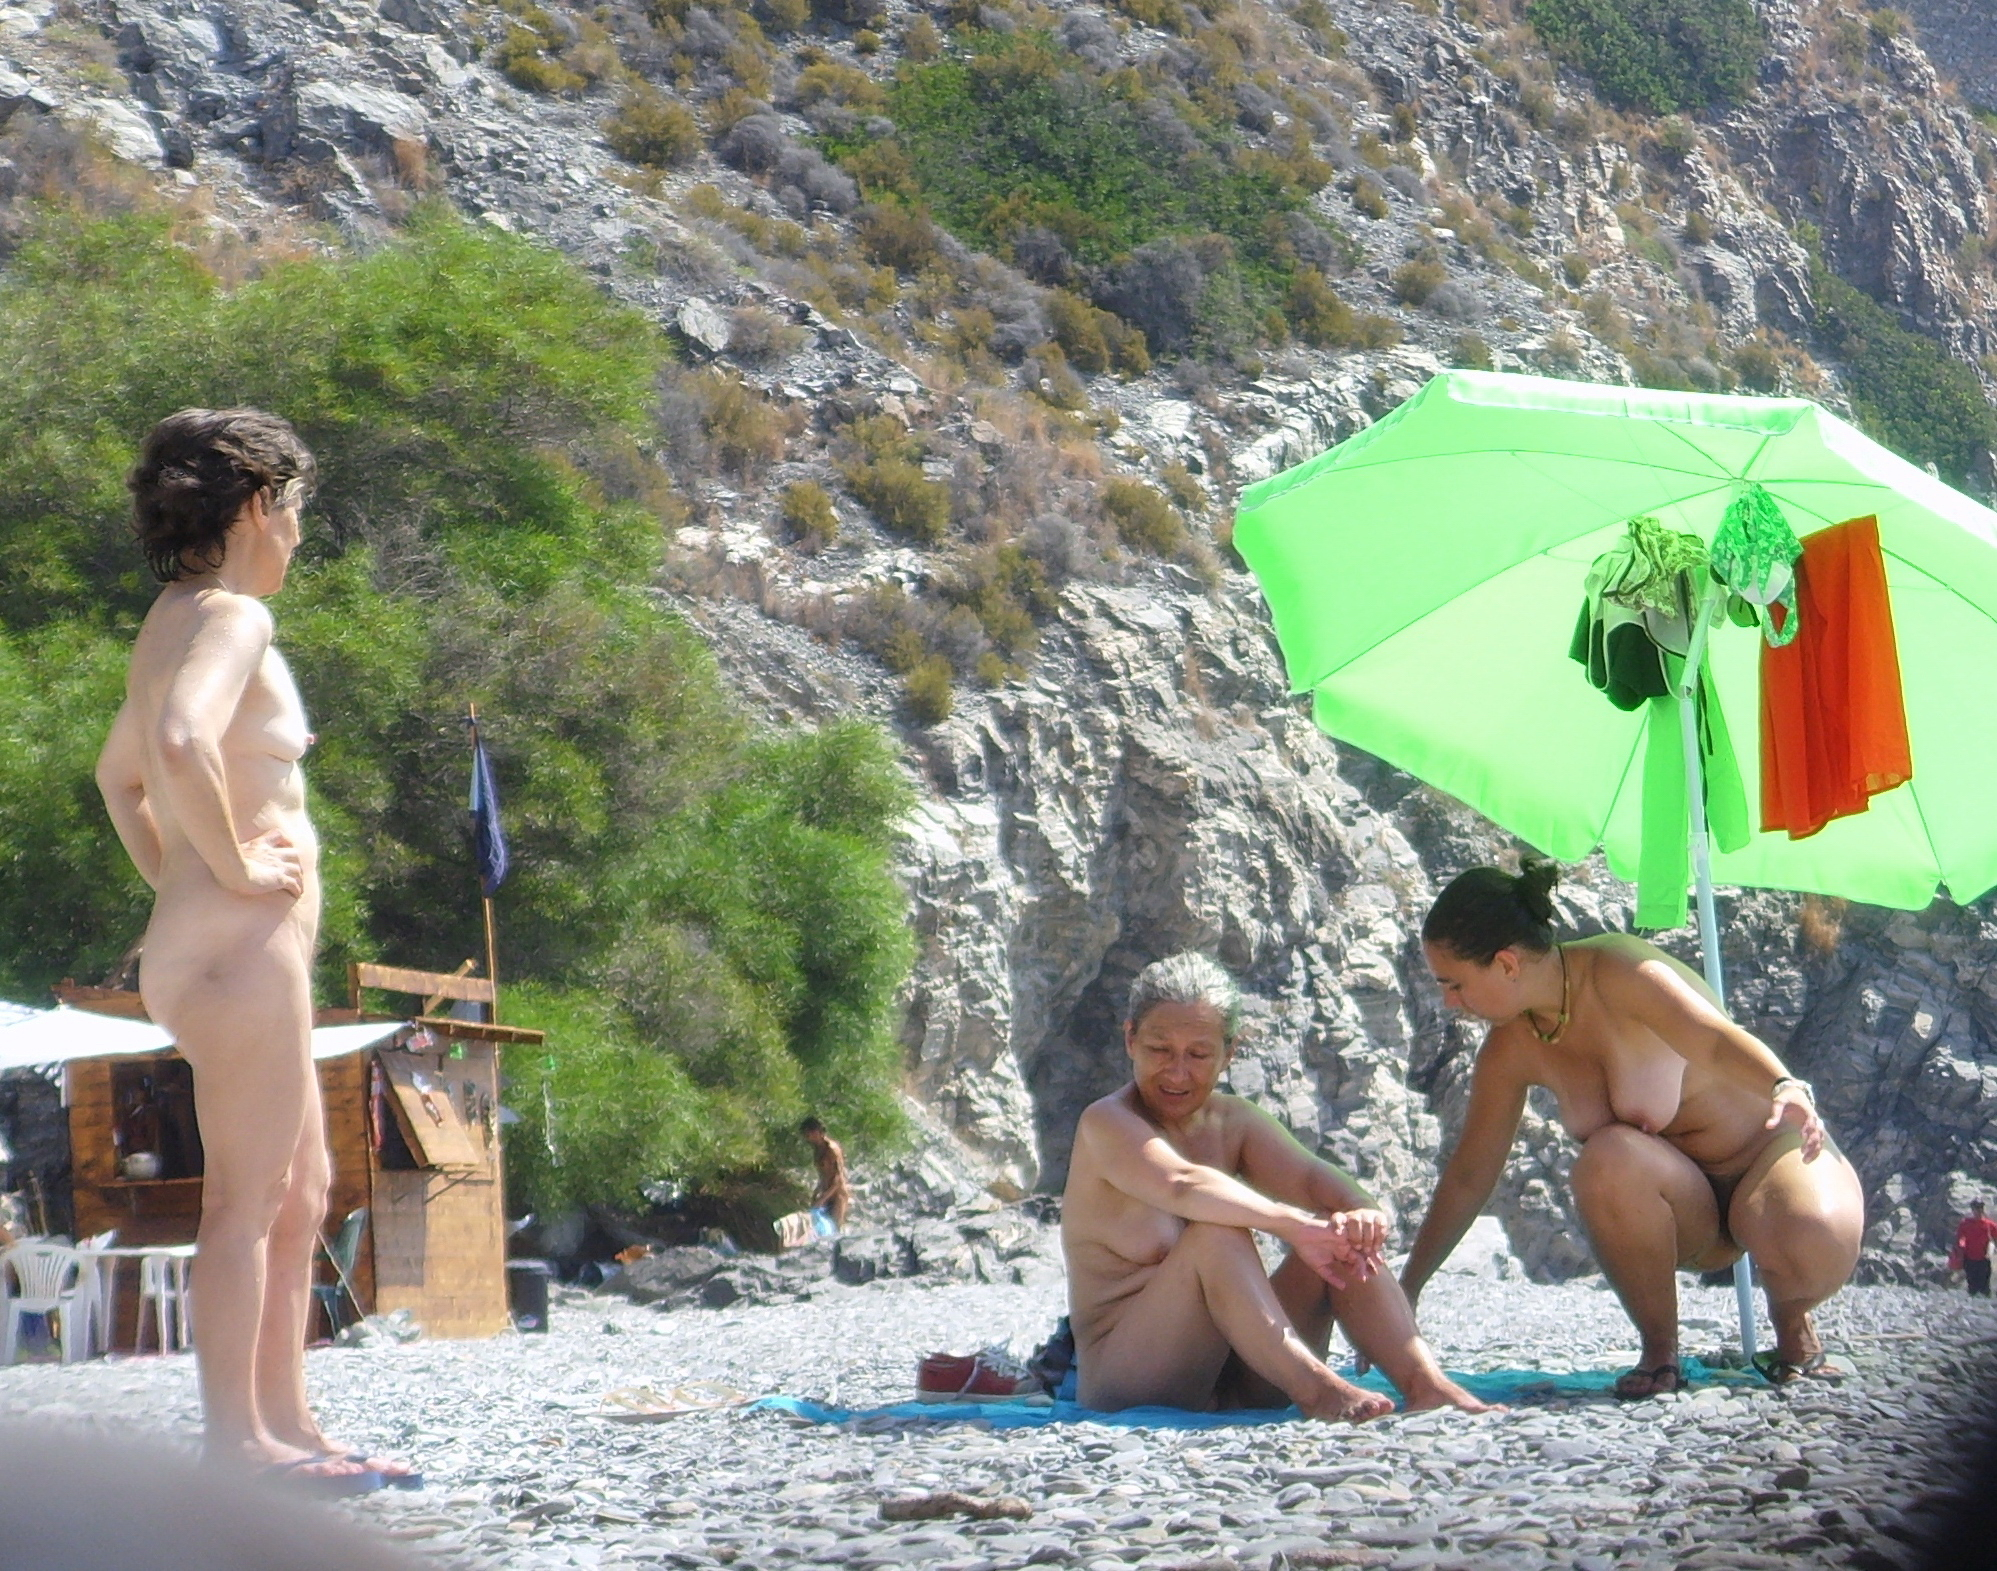 https://voyeurpapa.com/wp-content/uploads/2016/12/Nudists-family-nude-beach-1.jpg